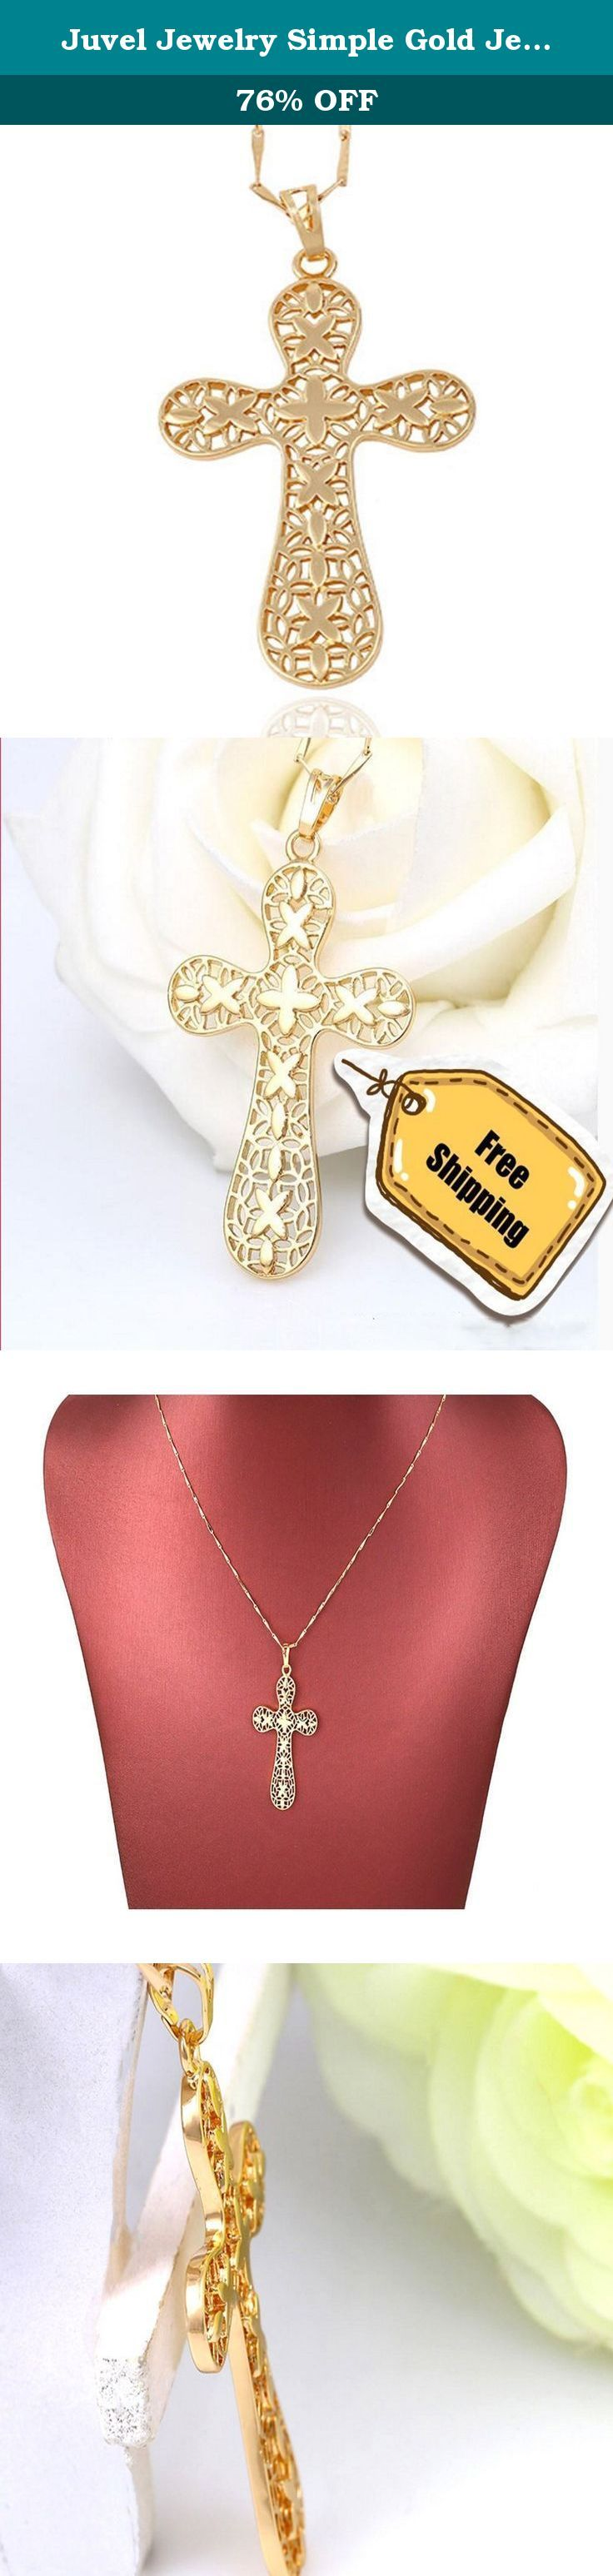 Juvel Jewelry Simple Gold Jewelry Religious Pendant + 18K Gold Plated Necklace With Fashion Design. Juvel Jewelry is selling 14K, 18K, 24K gold plated Rhodium Plated and 925 Sterling Silver jewelry for major business. Necklace & Pendant: Pendant necklace made of 18k gold, platinum plated, and pearl, various pendants for example pearl pendant, diamond, floral, animal, cross, letters. Earrings: Coming for Gorgeous and shiny, diamond sparkling. Hoop earring, stud earrings, tear drop earring...